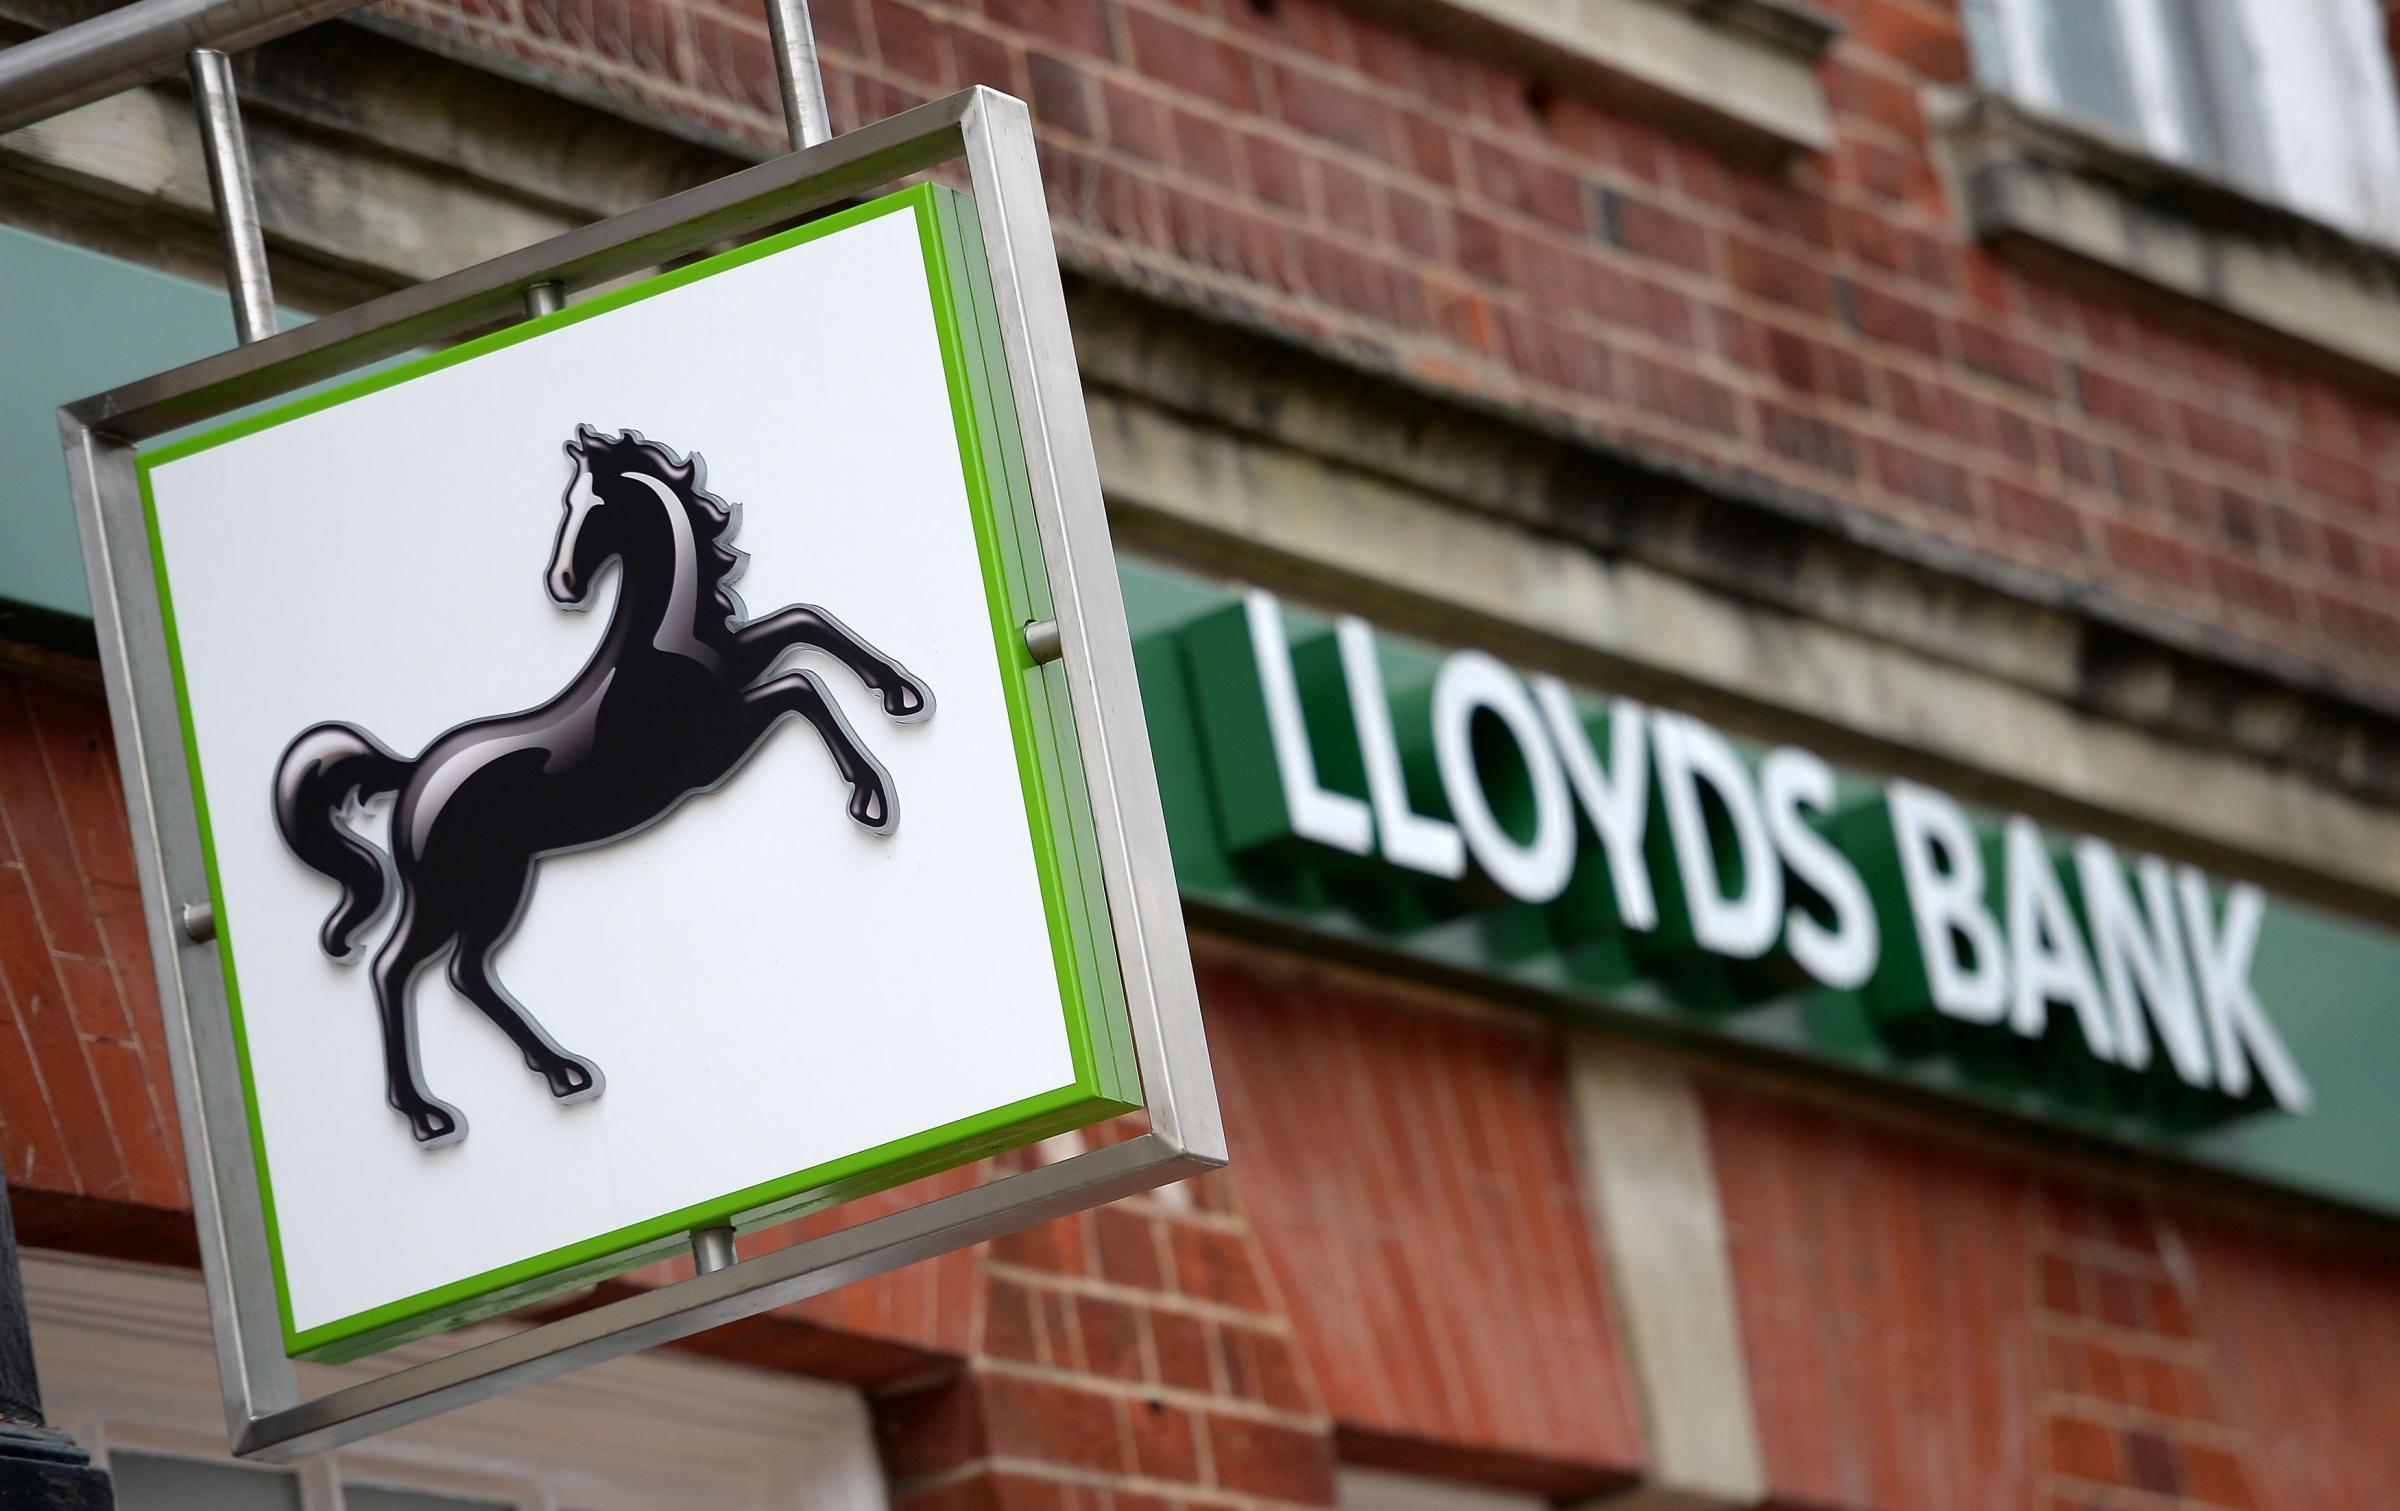 Lloyds Bank looks set to close 200 branches.